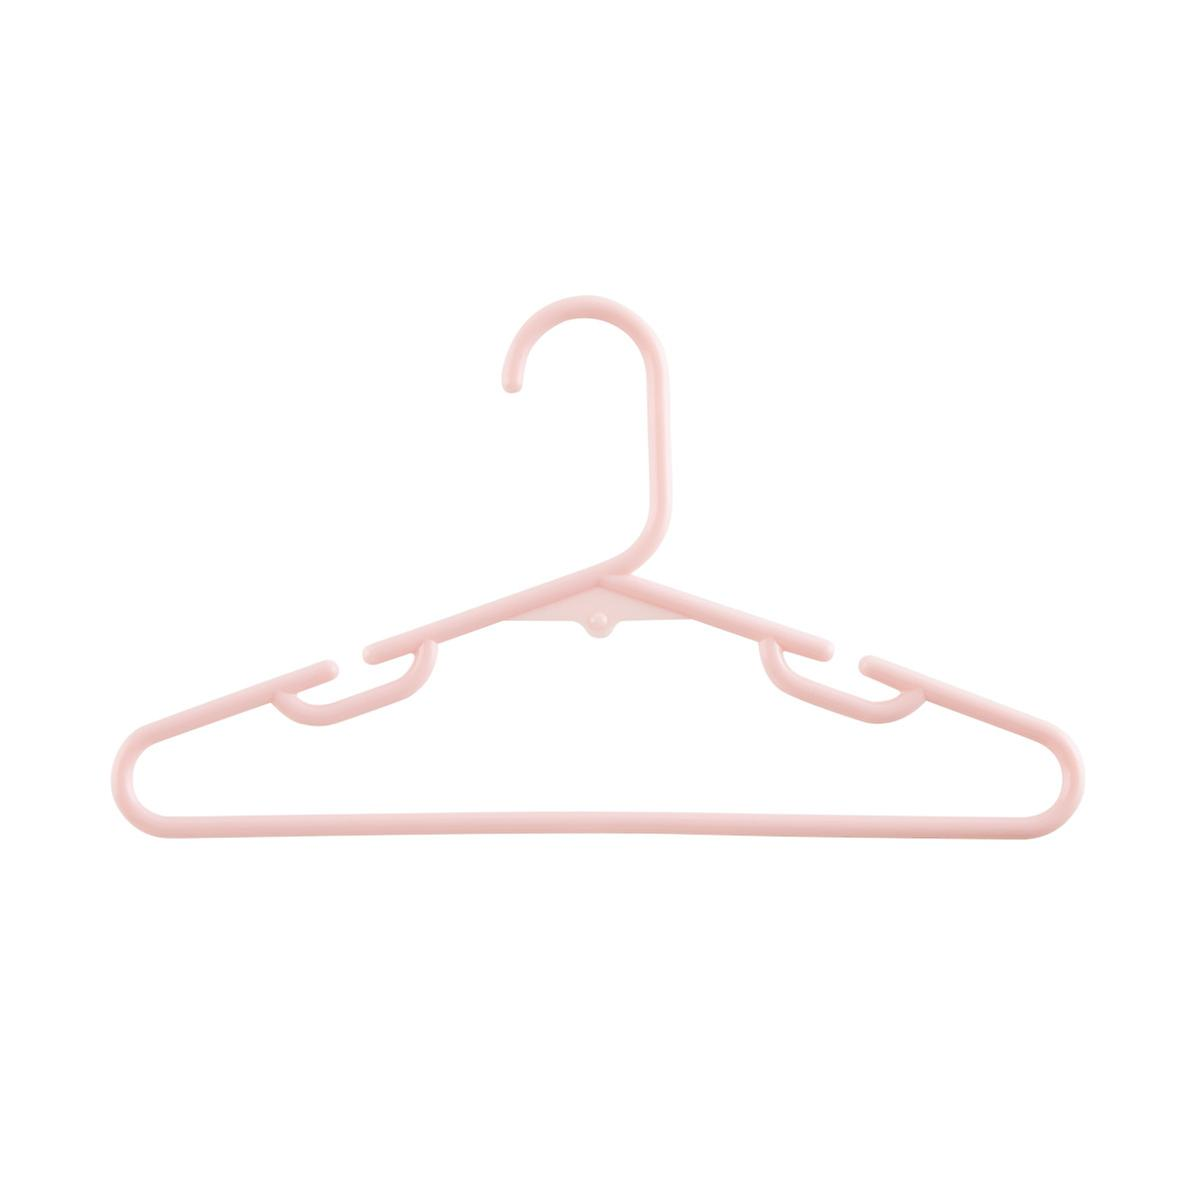 Children's Blush Tubular Hangers